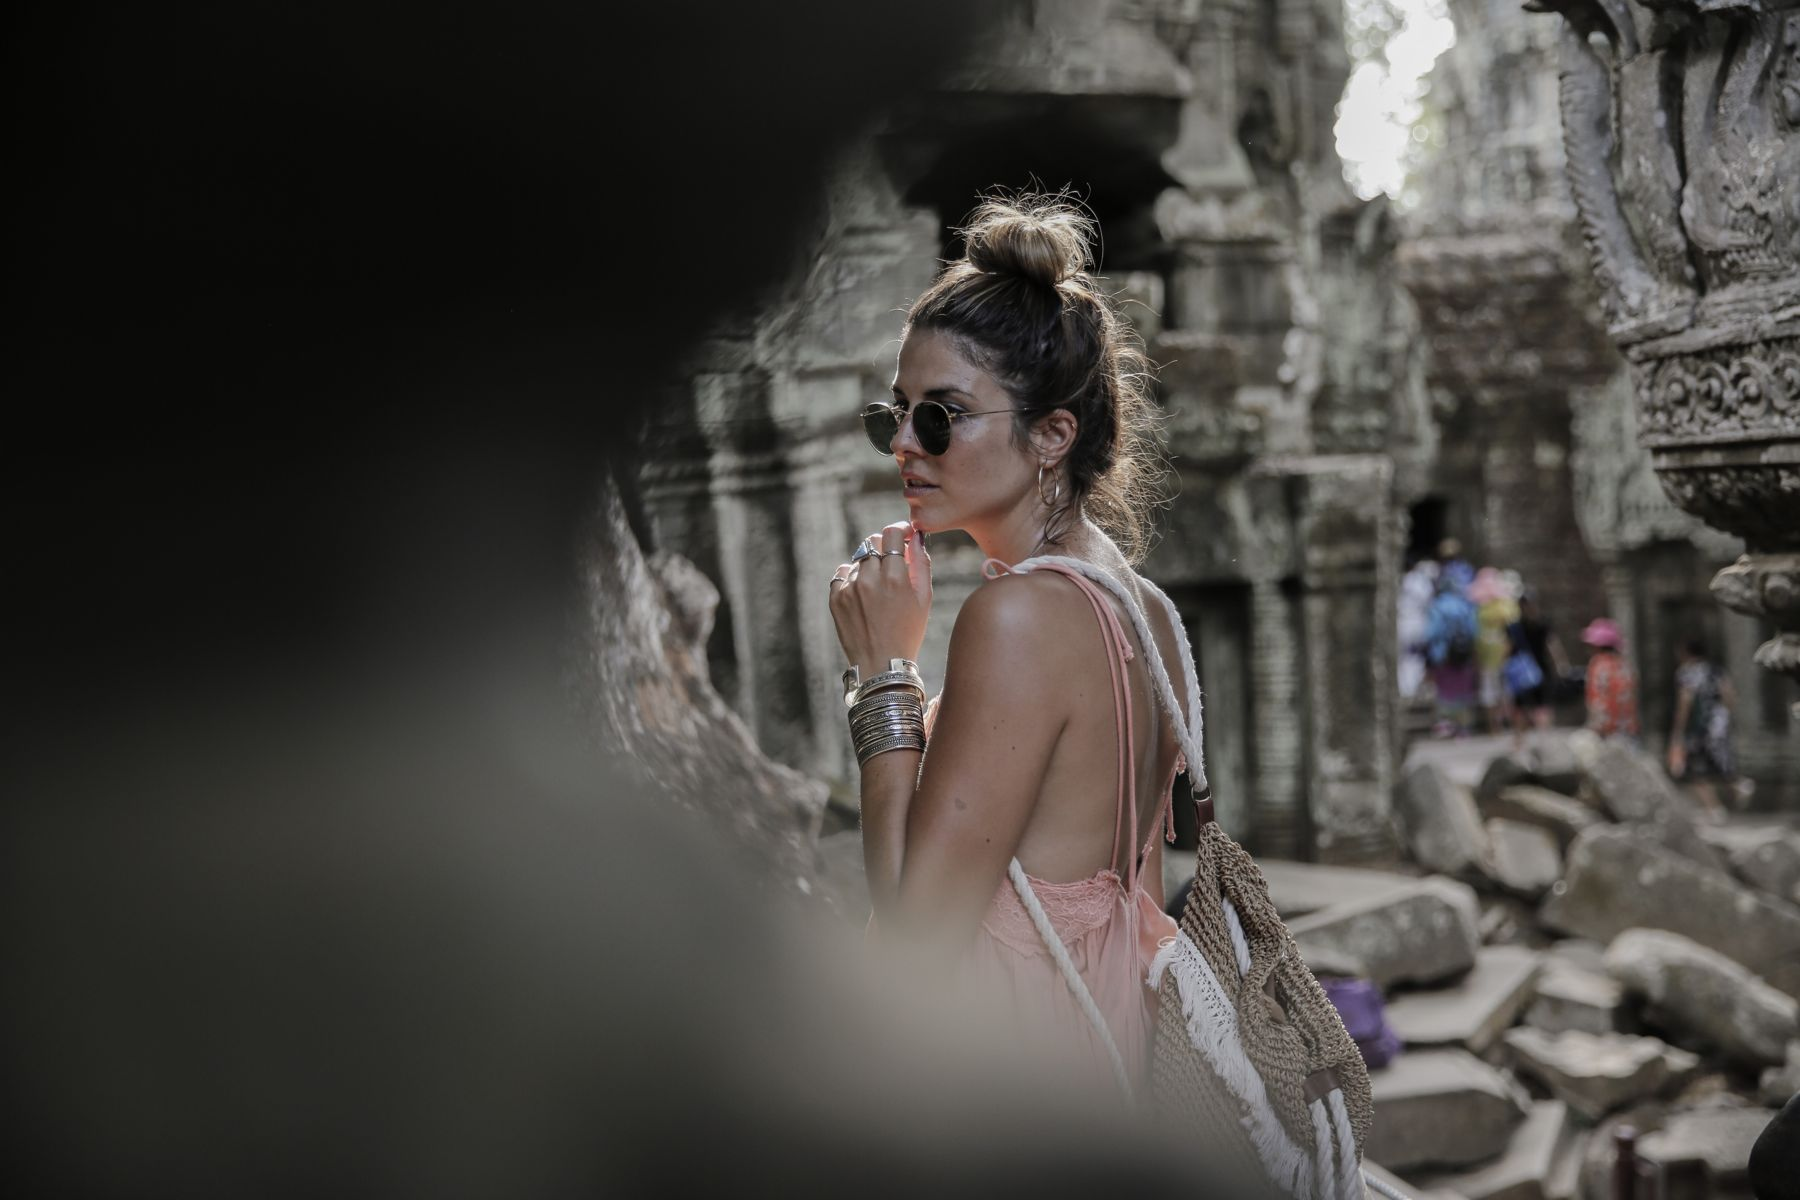 camboya cambodia angkor wat trendy taste summer trip outfit look dress sneakers stan smith vestido zapatillas asos adidas _39